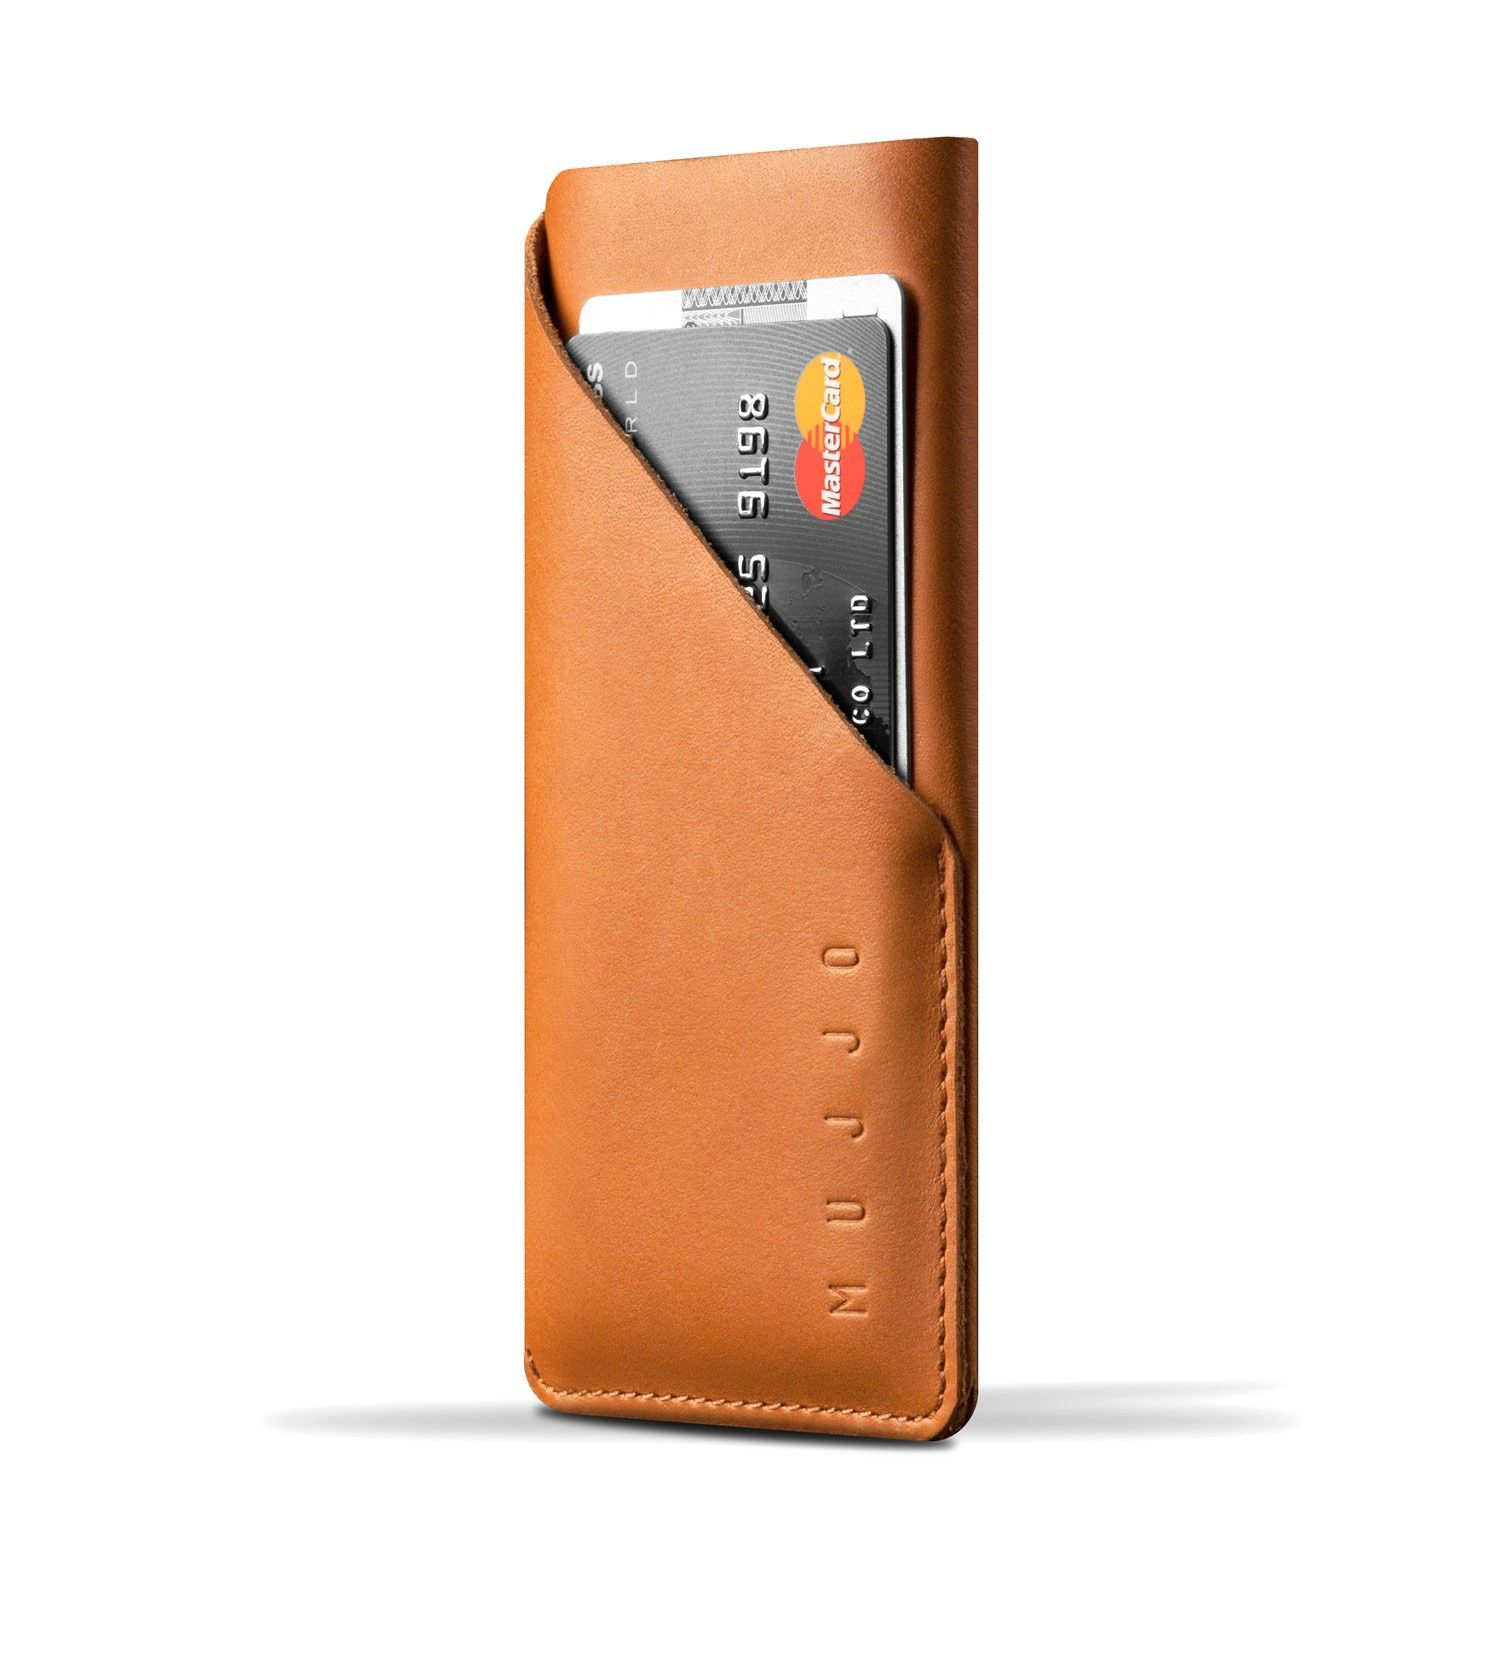 Mujjo Leather Wallet Sleeve iPhone X Tan